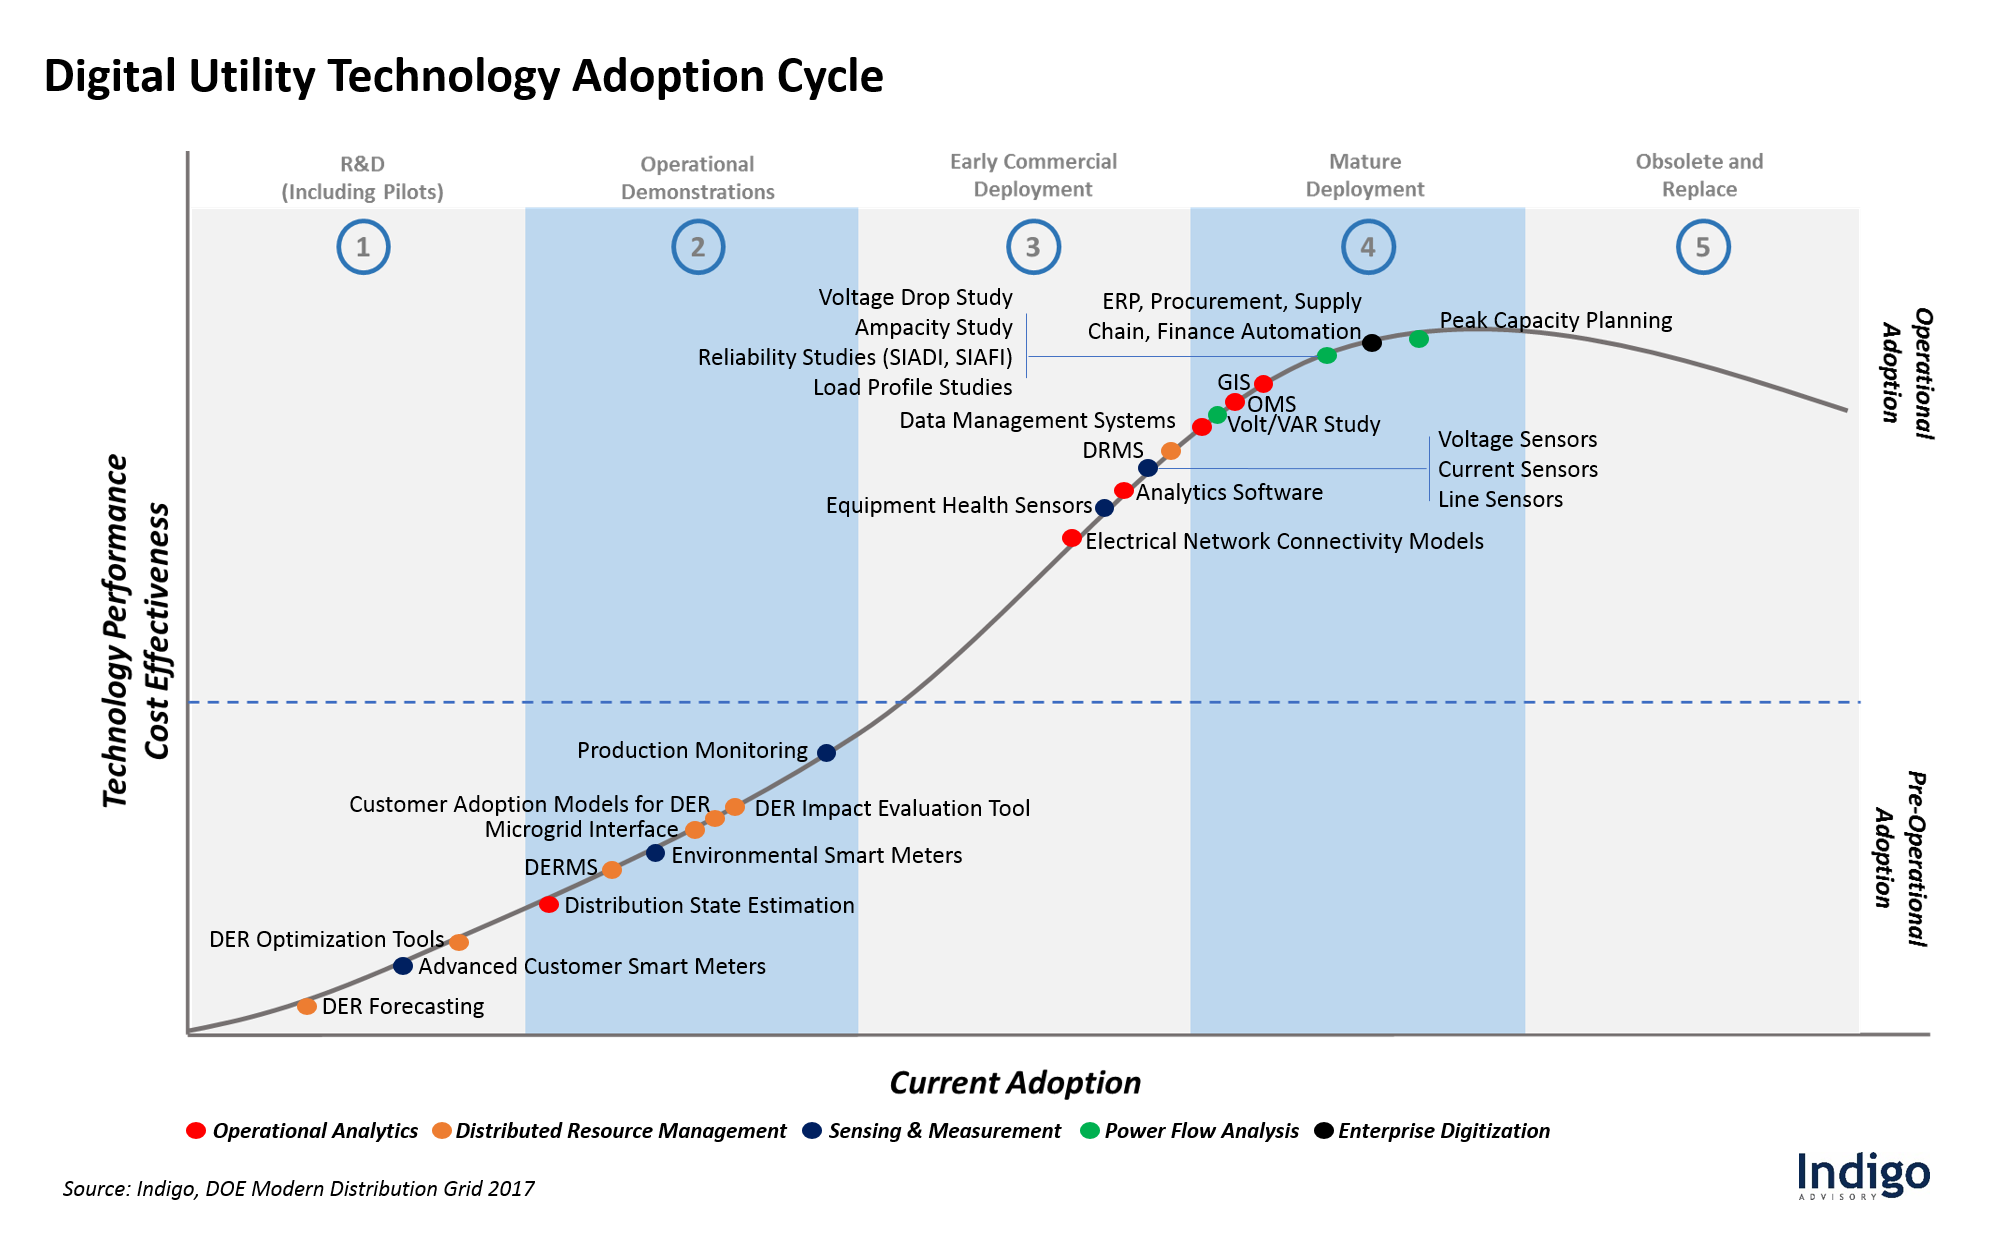 adoption cycle models